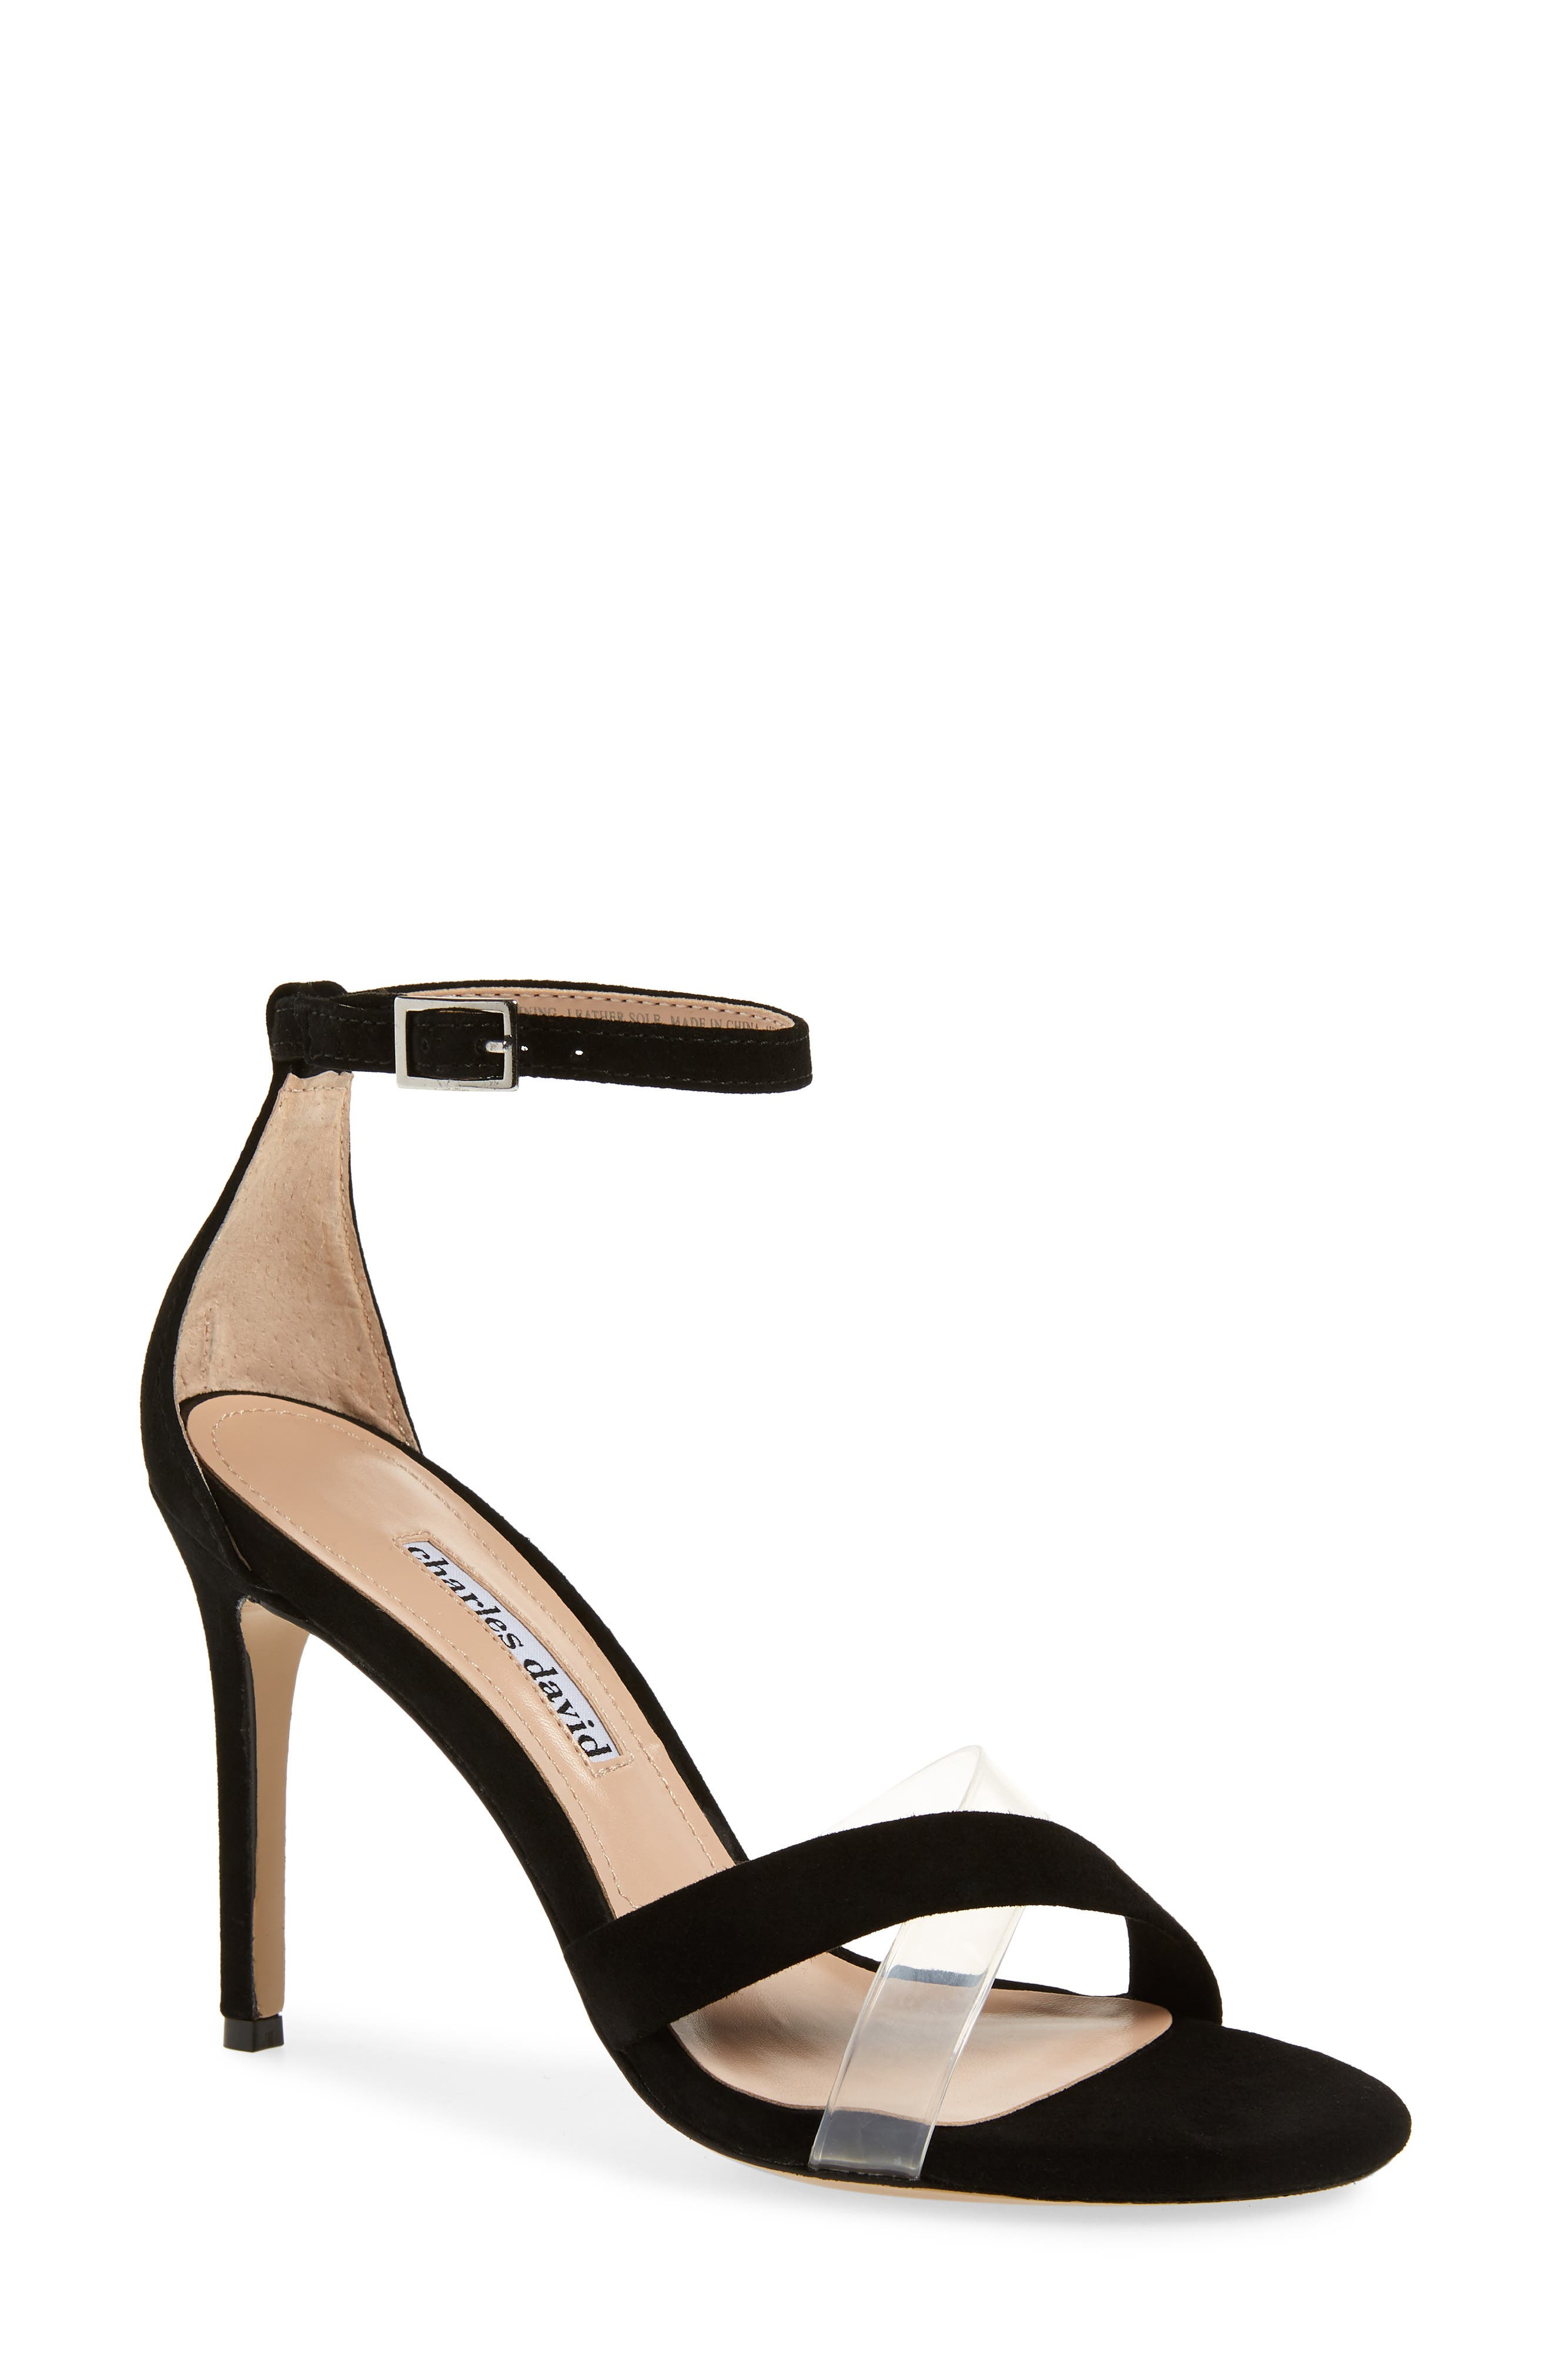 Charles David Courtney Sandal, Black